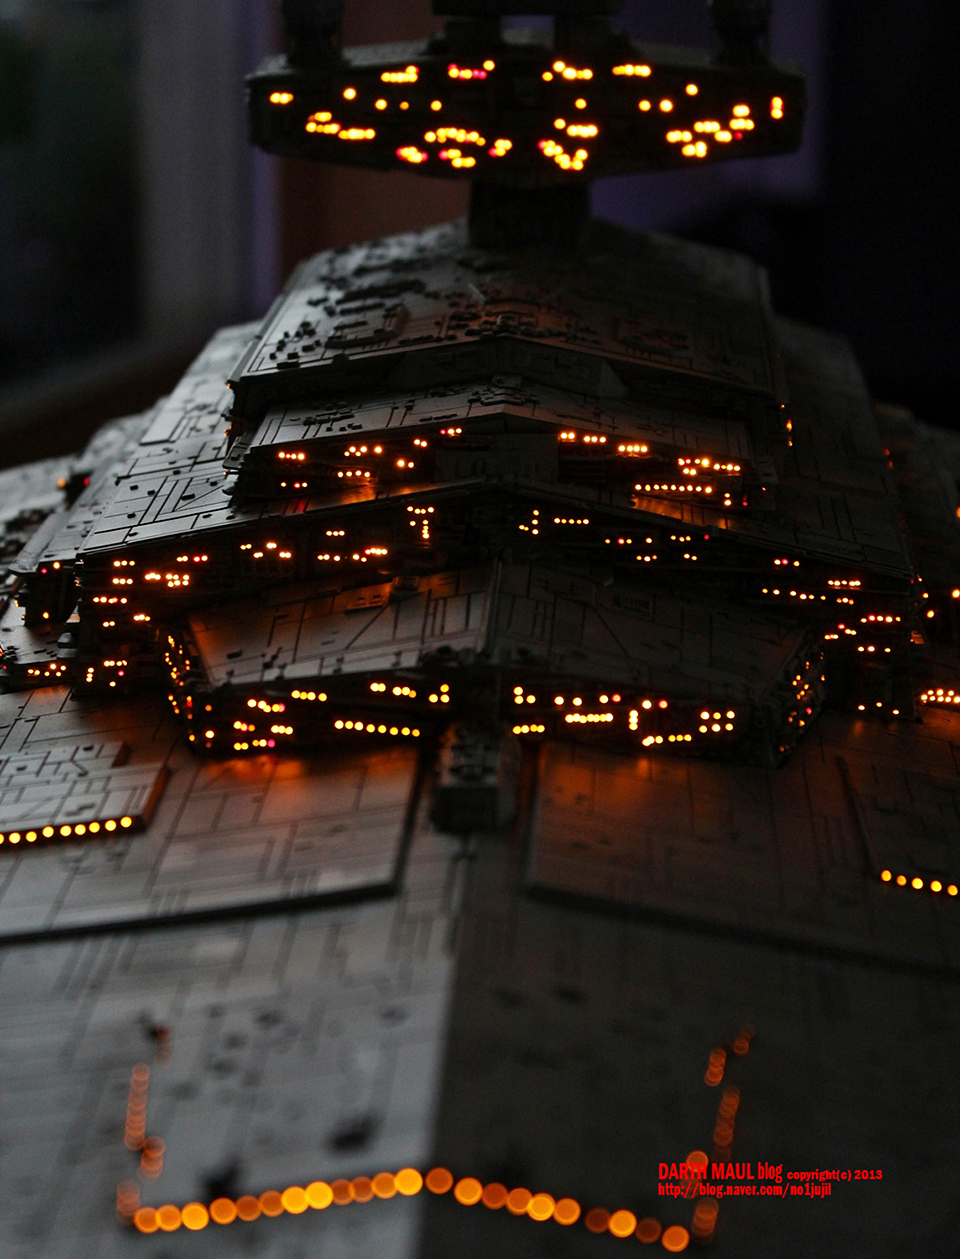 star-wars-imperial-star-destroyer-model-by-choi-jin-hae-11.jpg